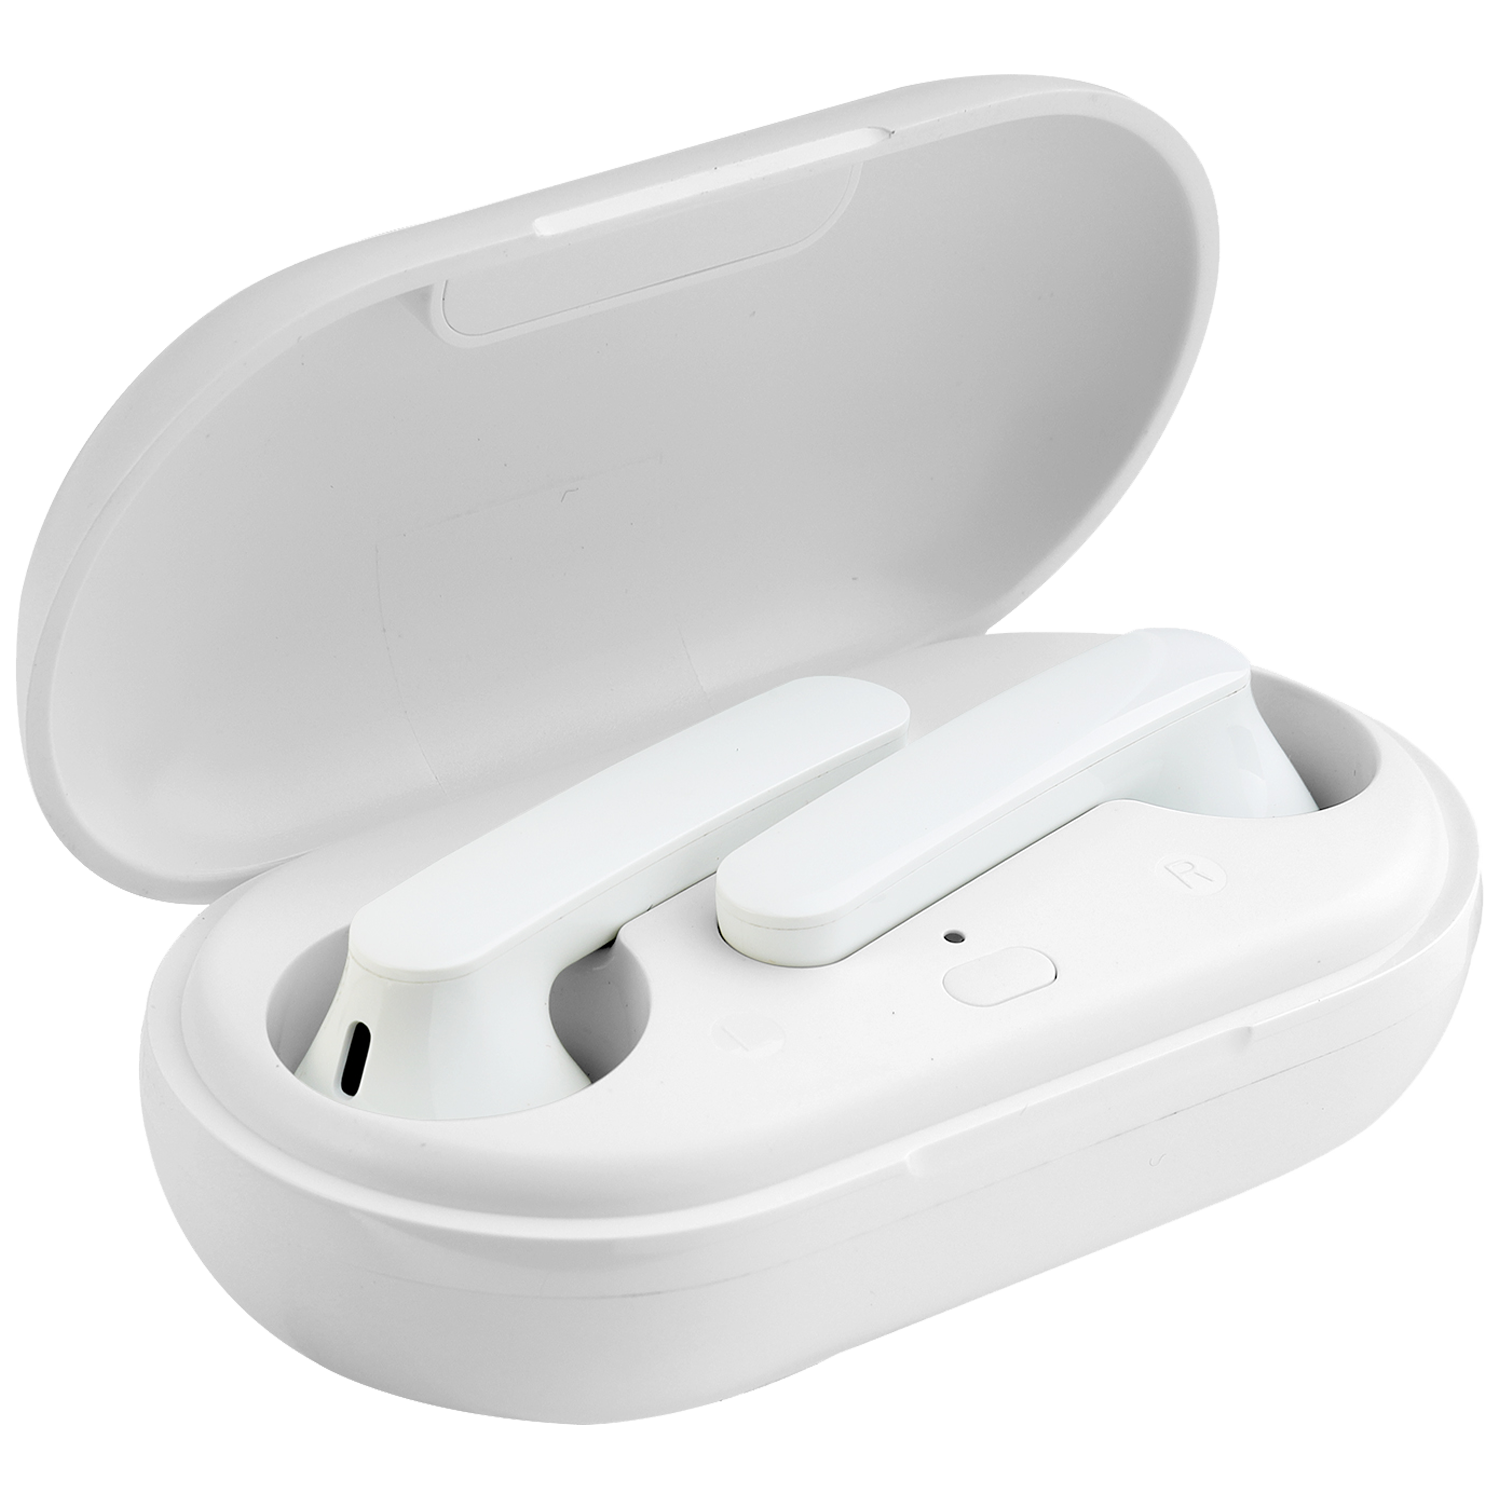 Lumiford Maximus In-Ear Passive Noise Cancellation Truly Wireless Earbuds with Mic (Bluetooth 5.0, Stereo Sound, T85, White)_1